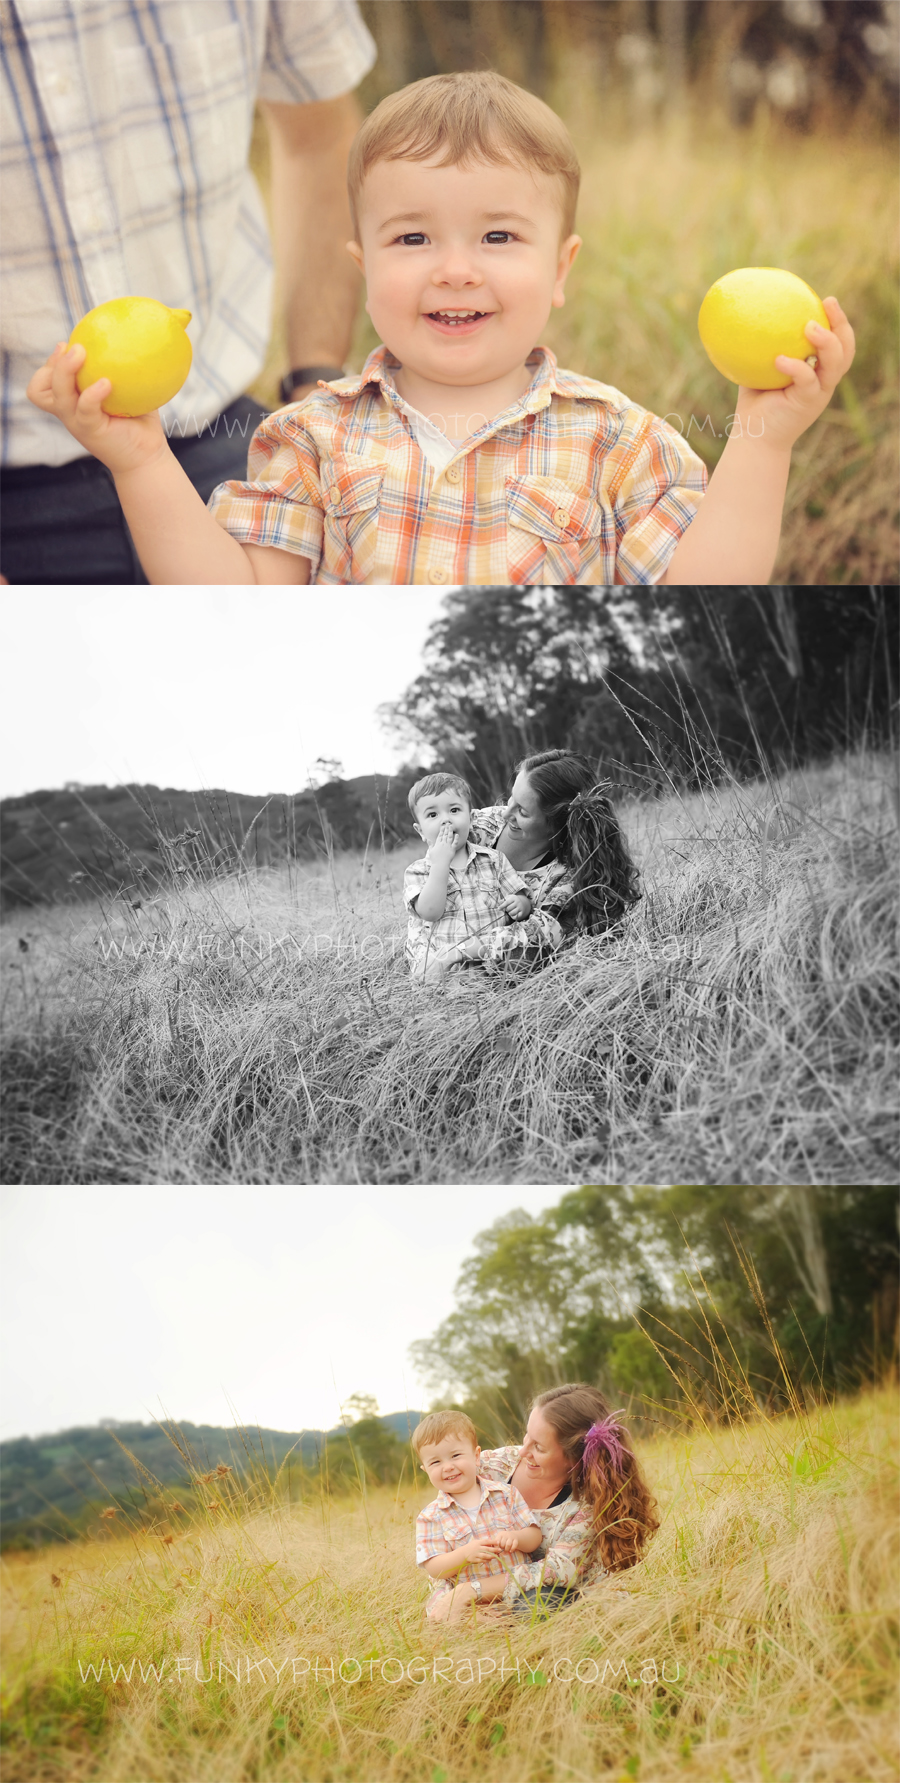 family photography in nambour on a farm mum and baby playing